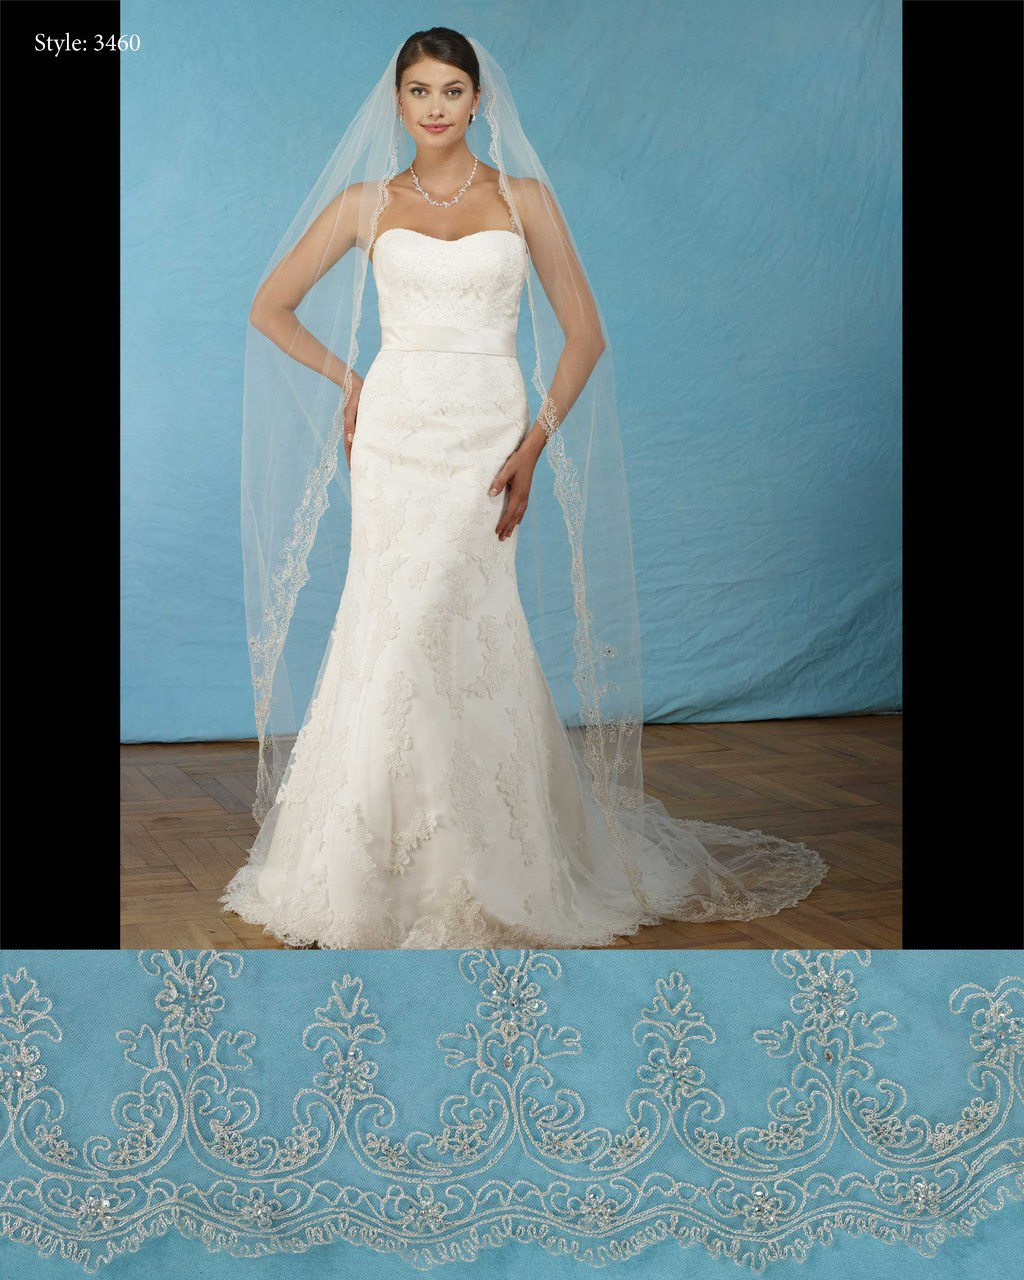 """Marionat Bridal Veils 3460- Silver embroidered scallop 108"""" Inches ..."""